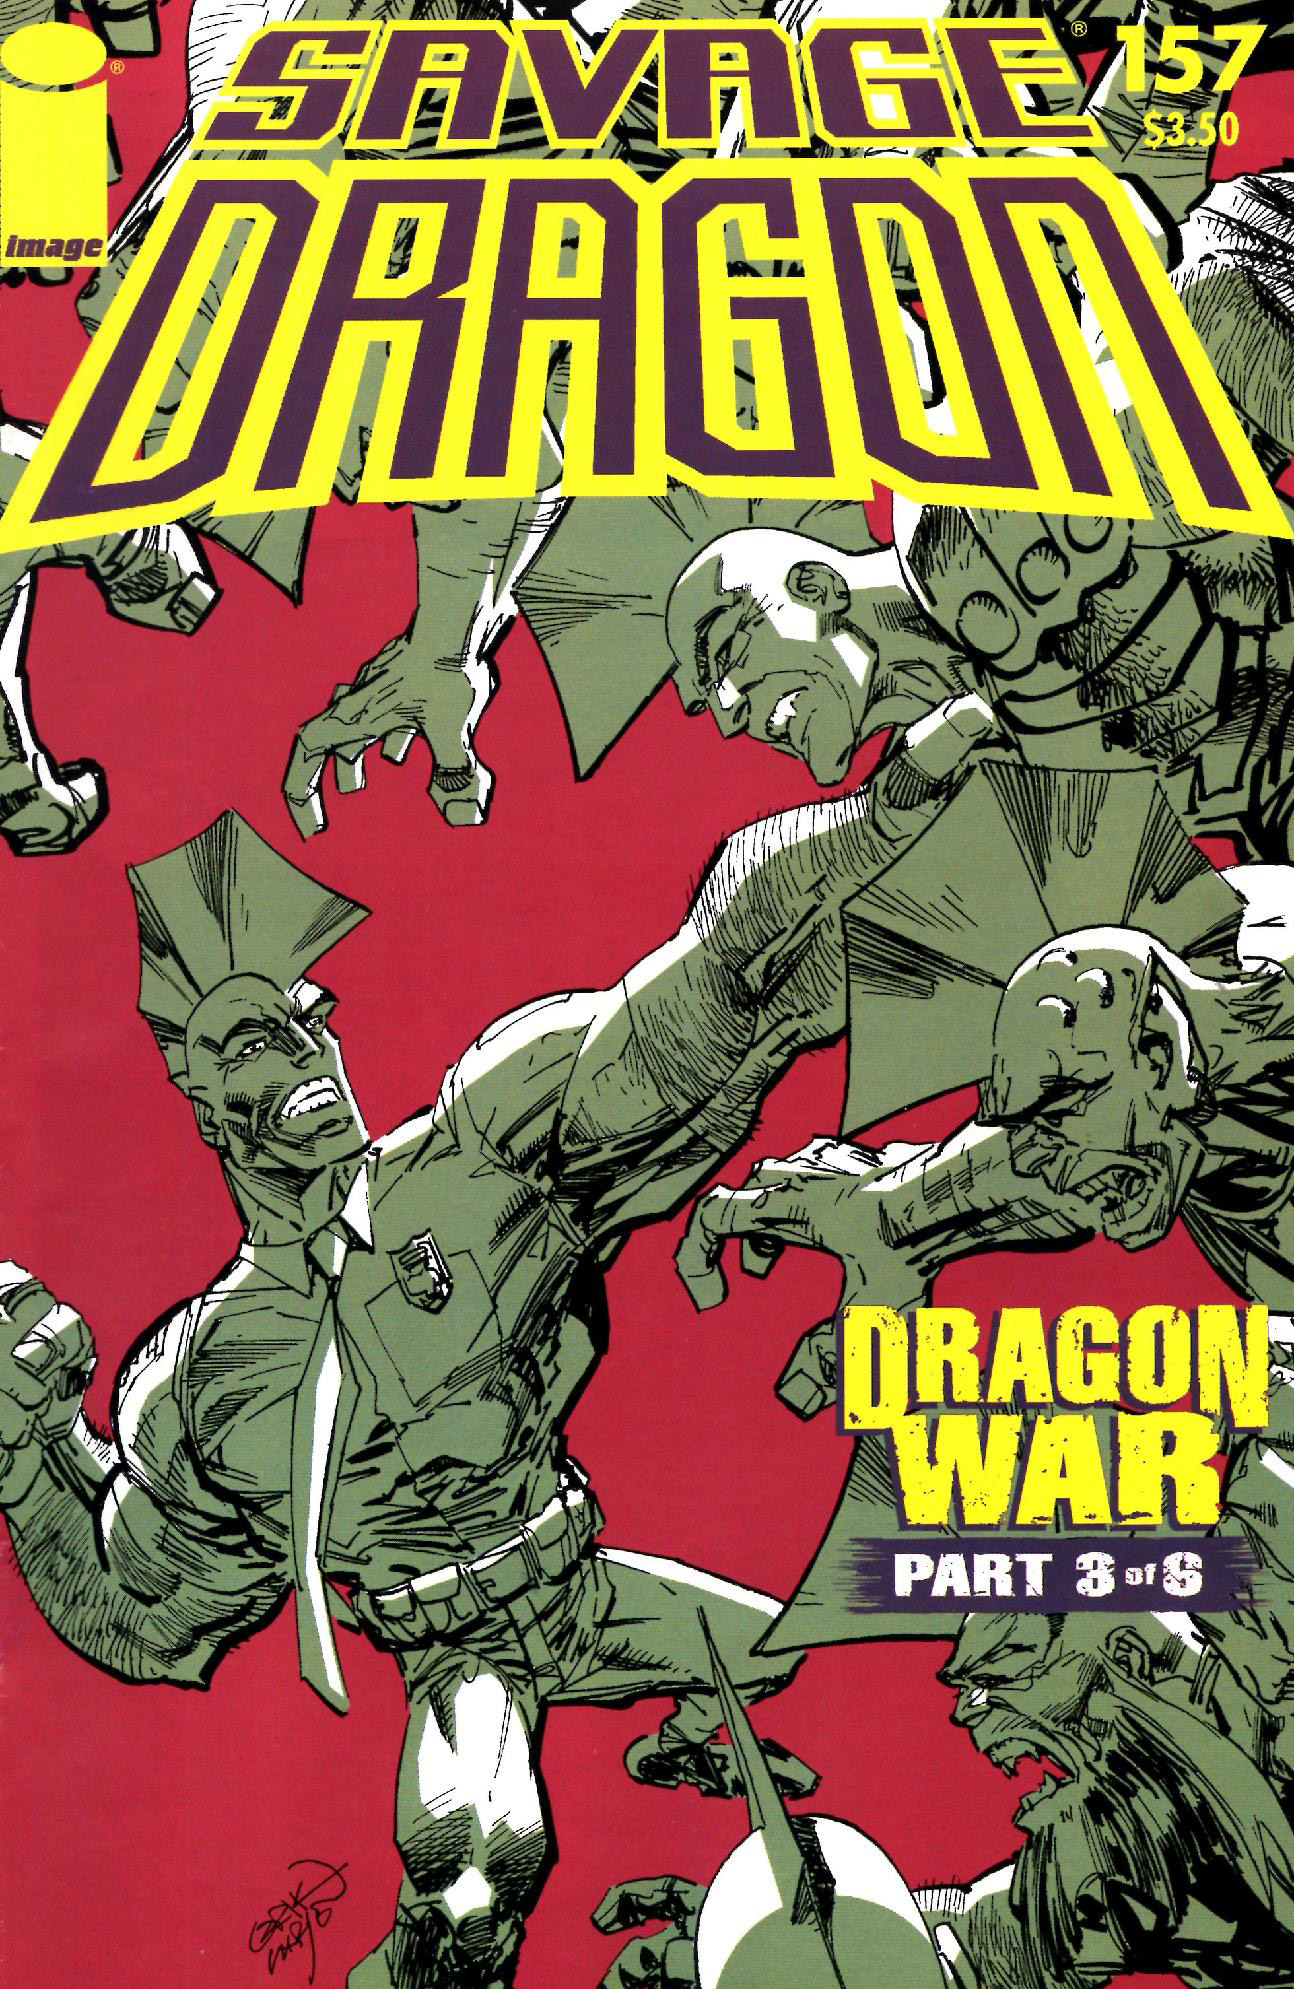 Cover Savage Dragon Vol.2 #157